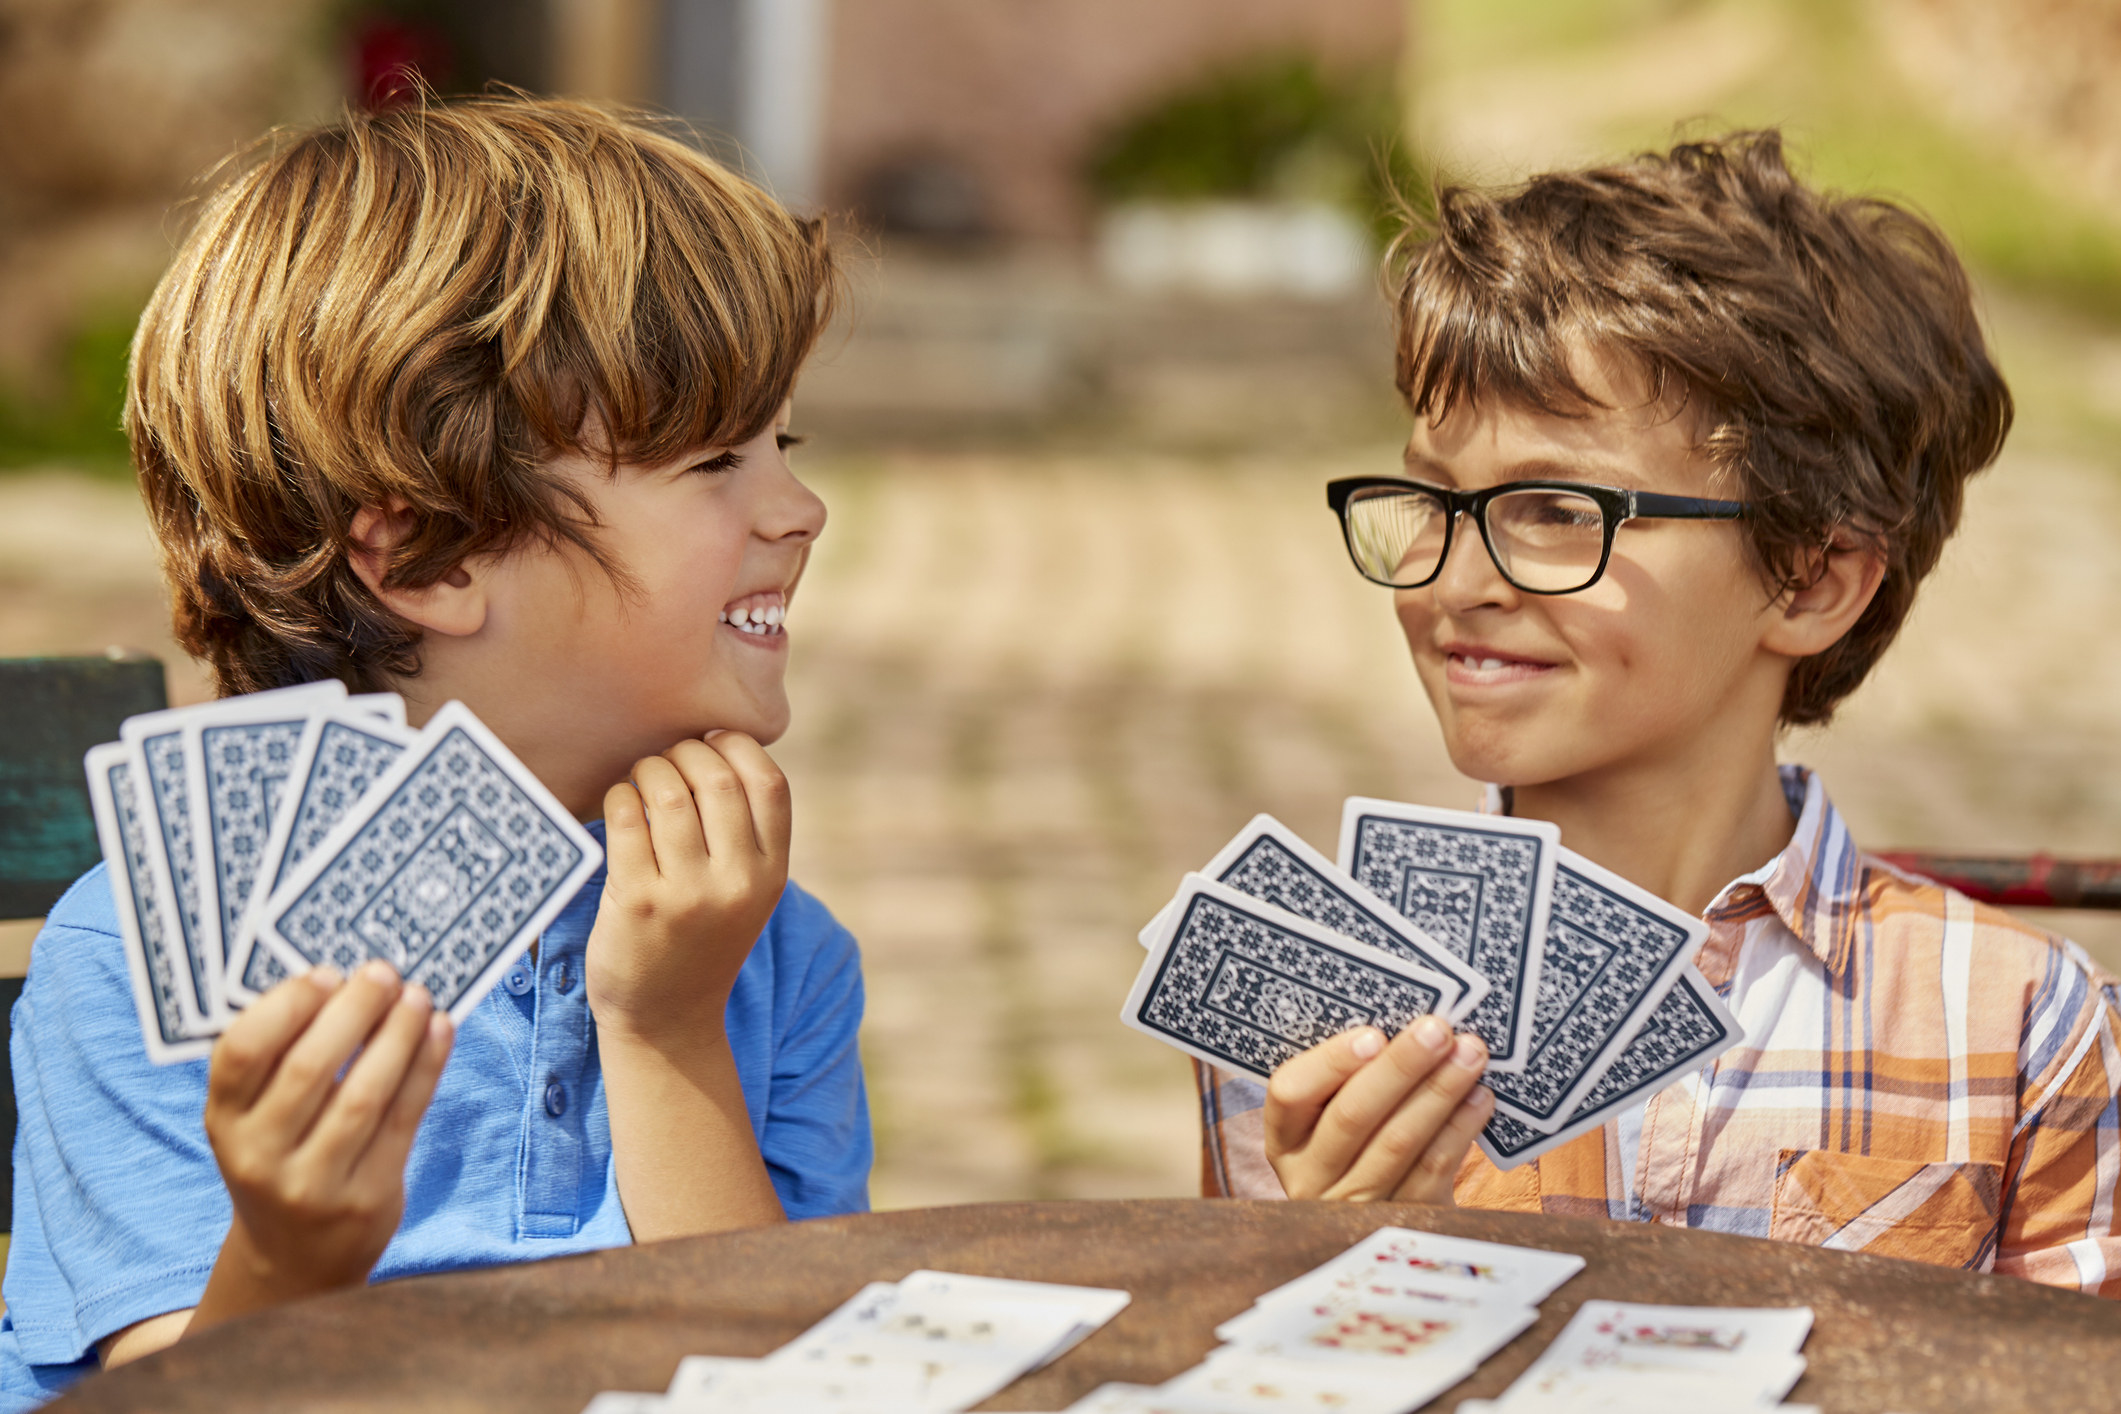 Two Spanish boys laugh as they play cards